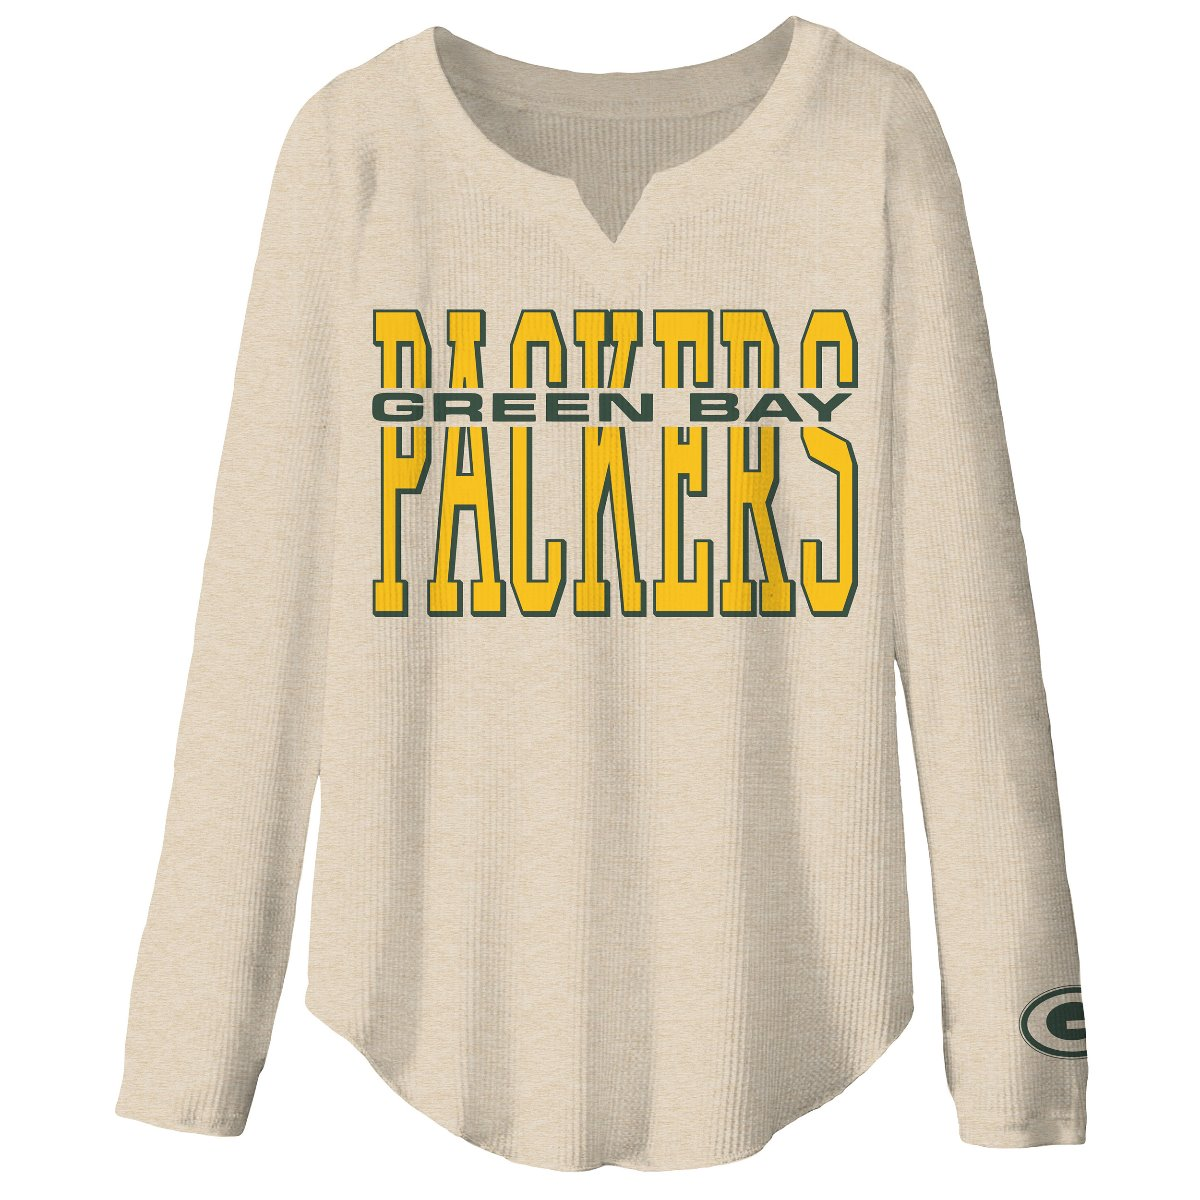 Aaron Rodgers Green Bay Packers Therma Long Sleeve Jersey